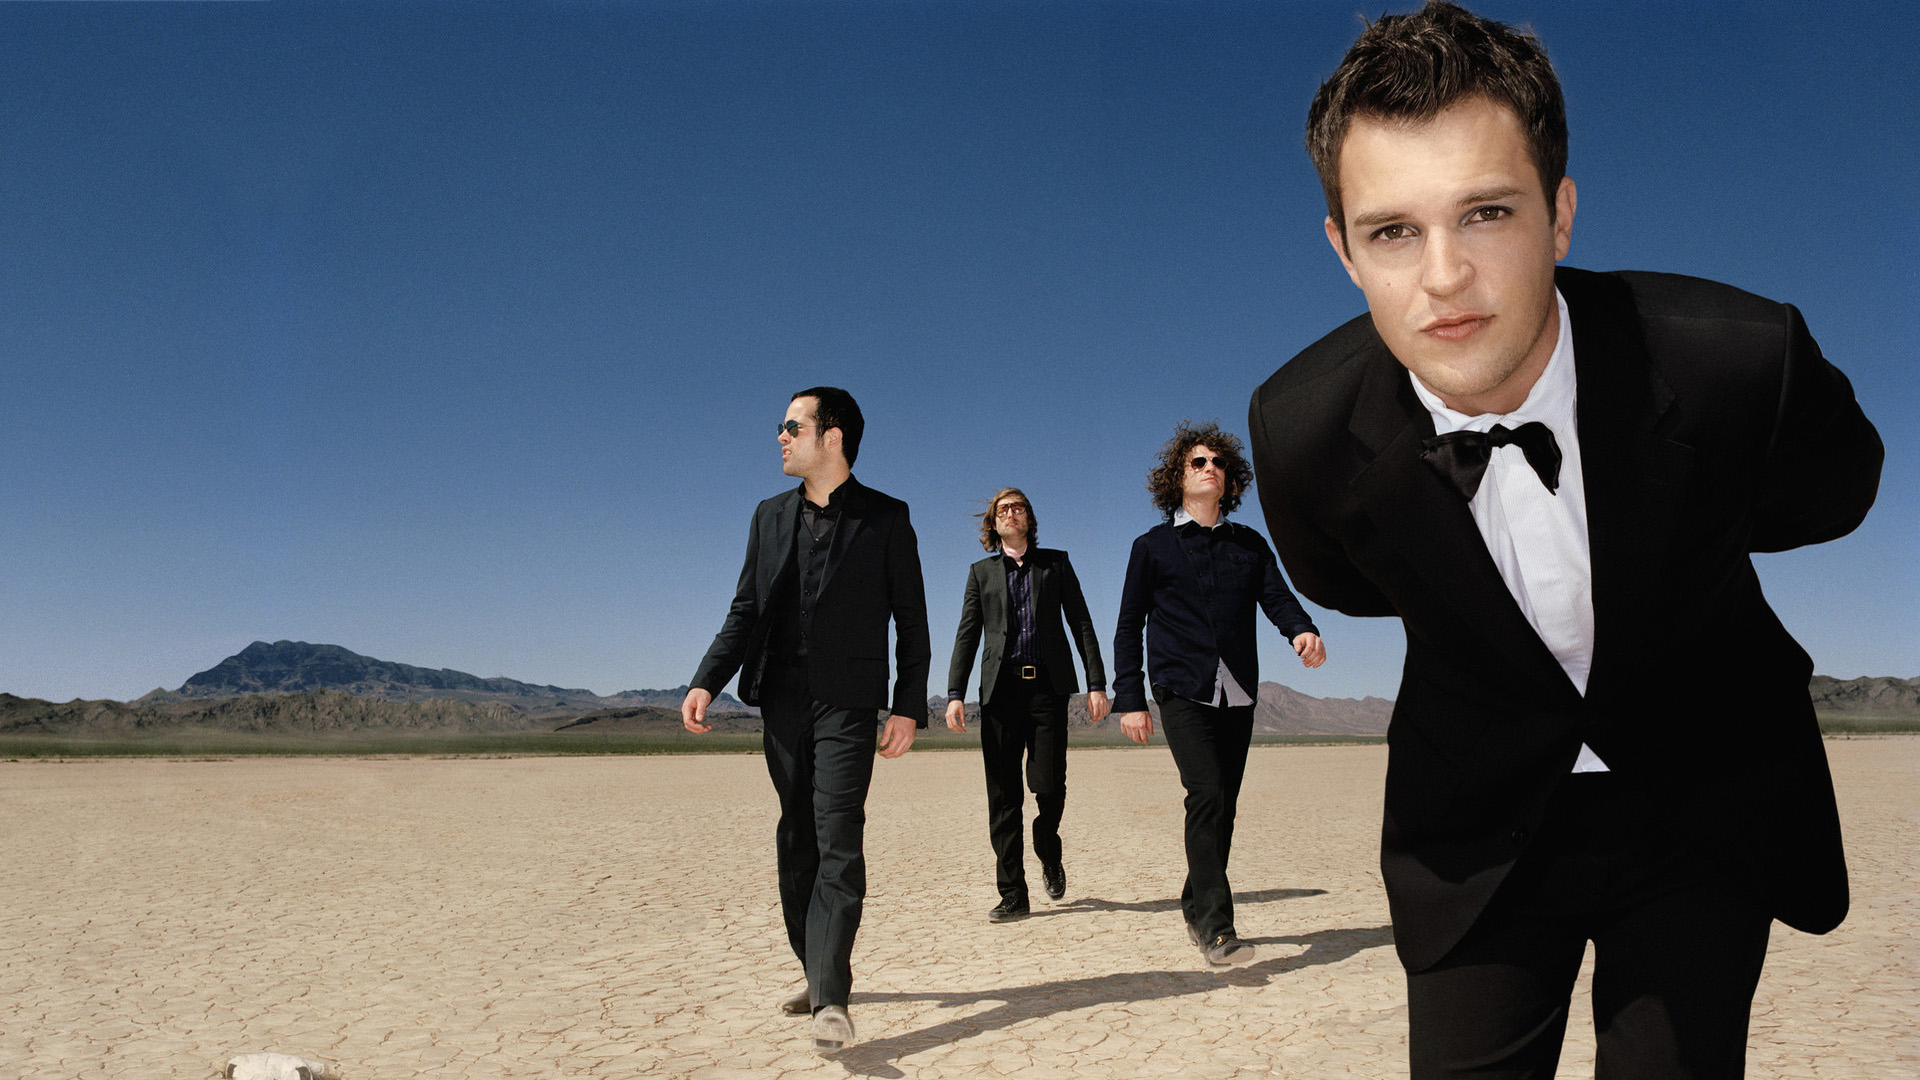 When You Were Young av The Killers